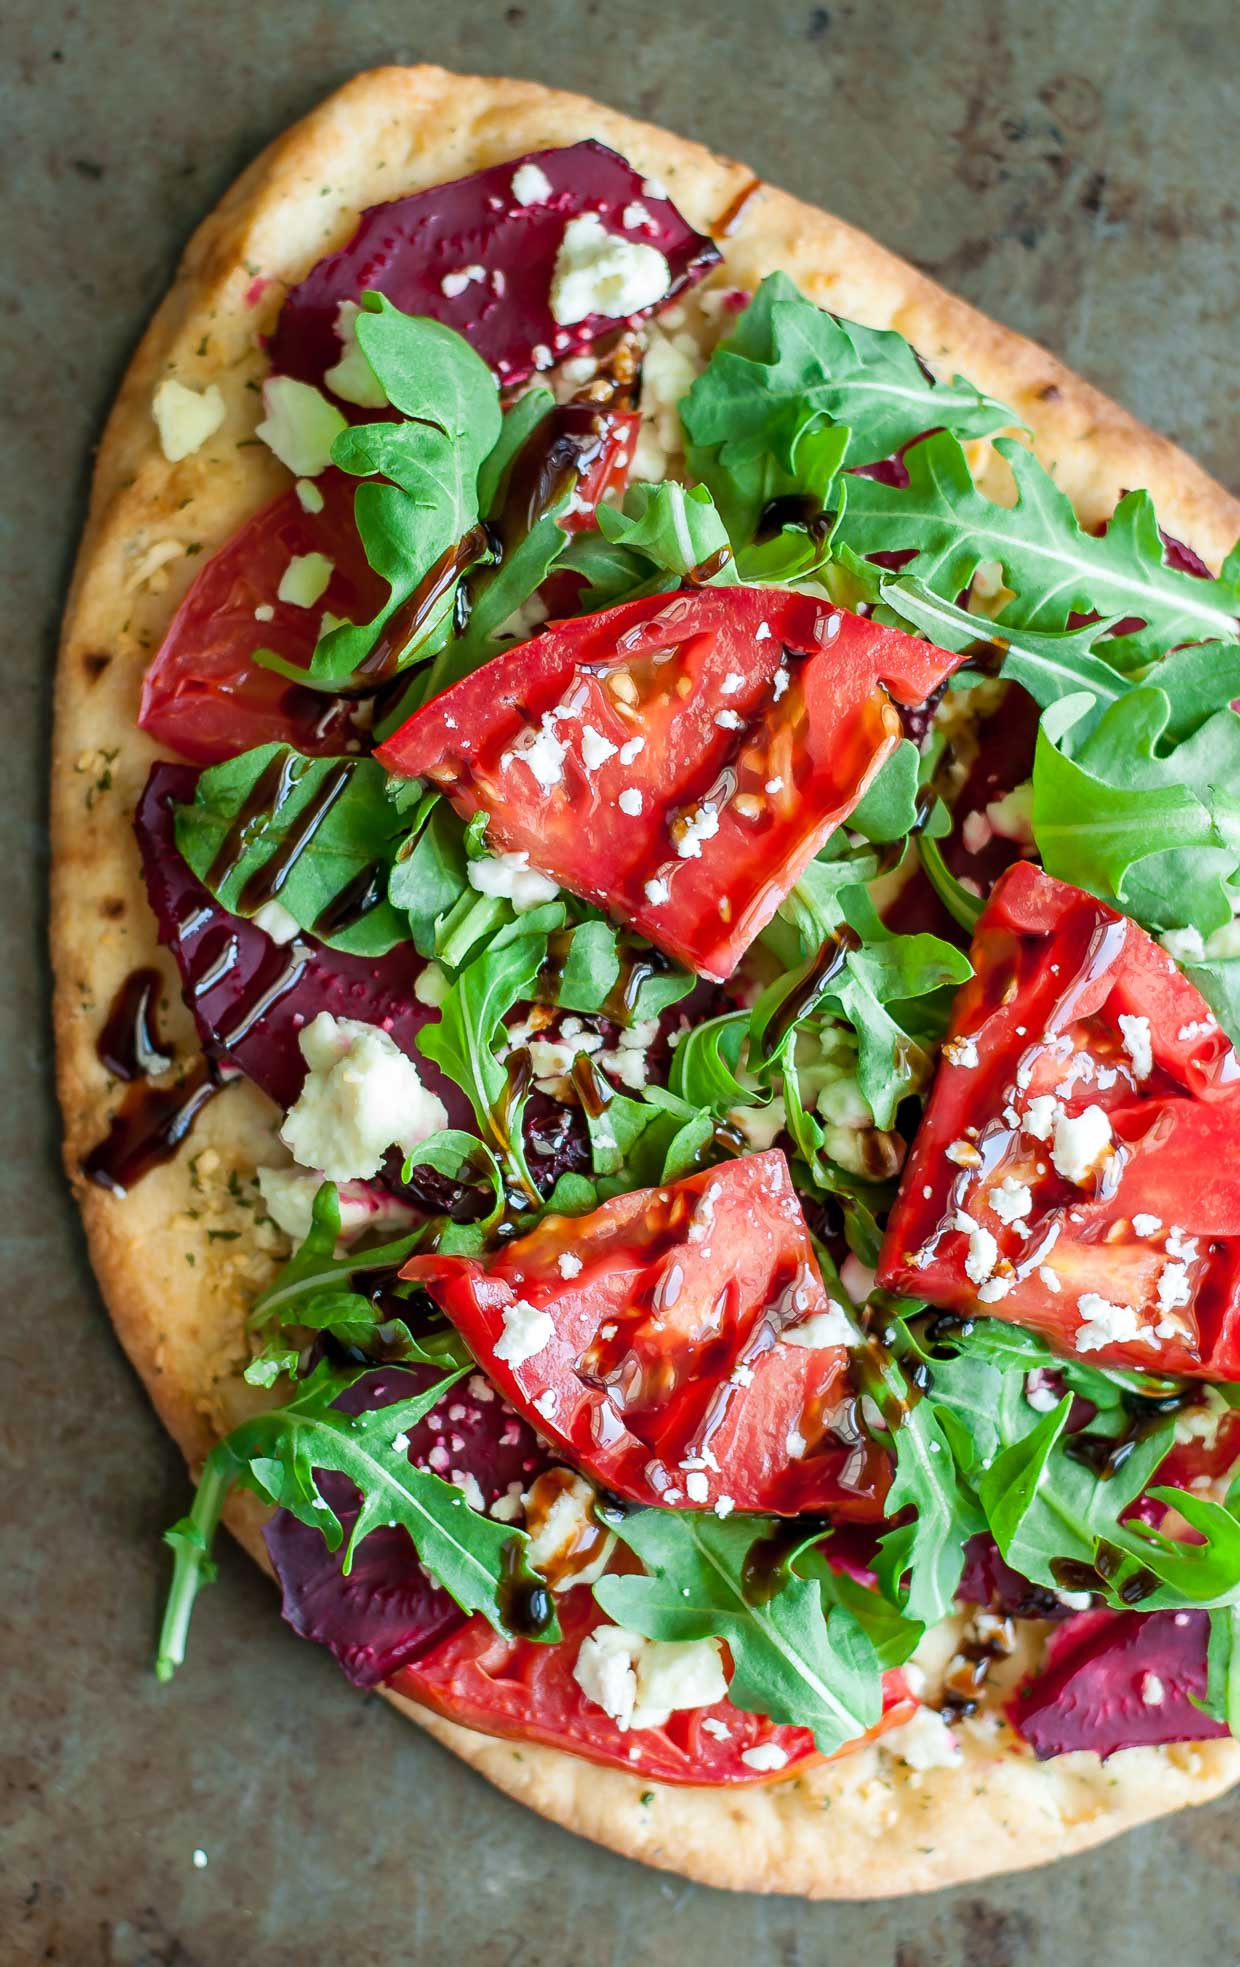 Beetza!!! Garlicky Flatbread Pizza with Beets, Balsamic, and Feta